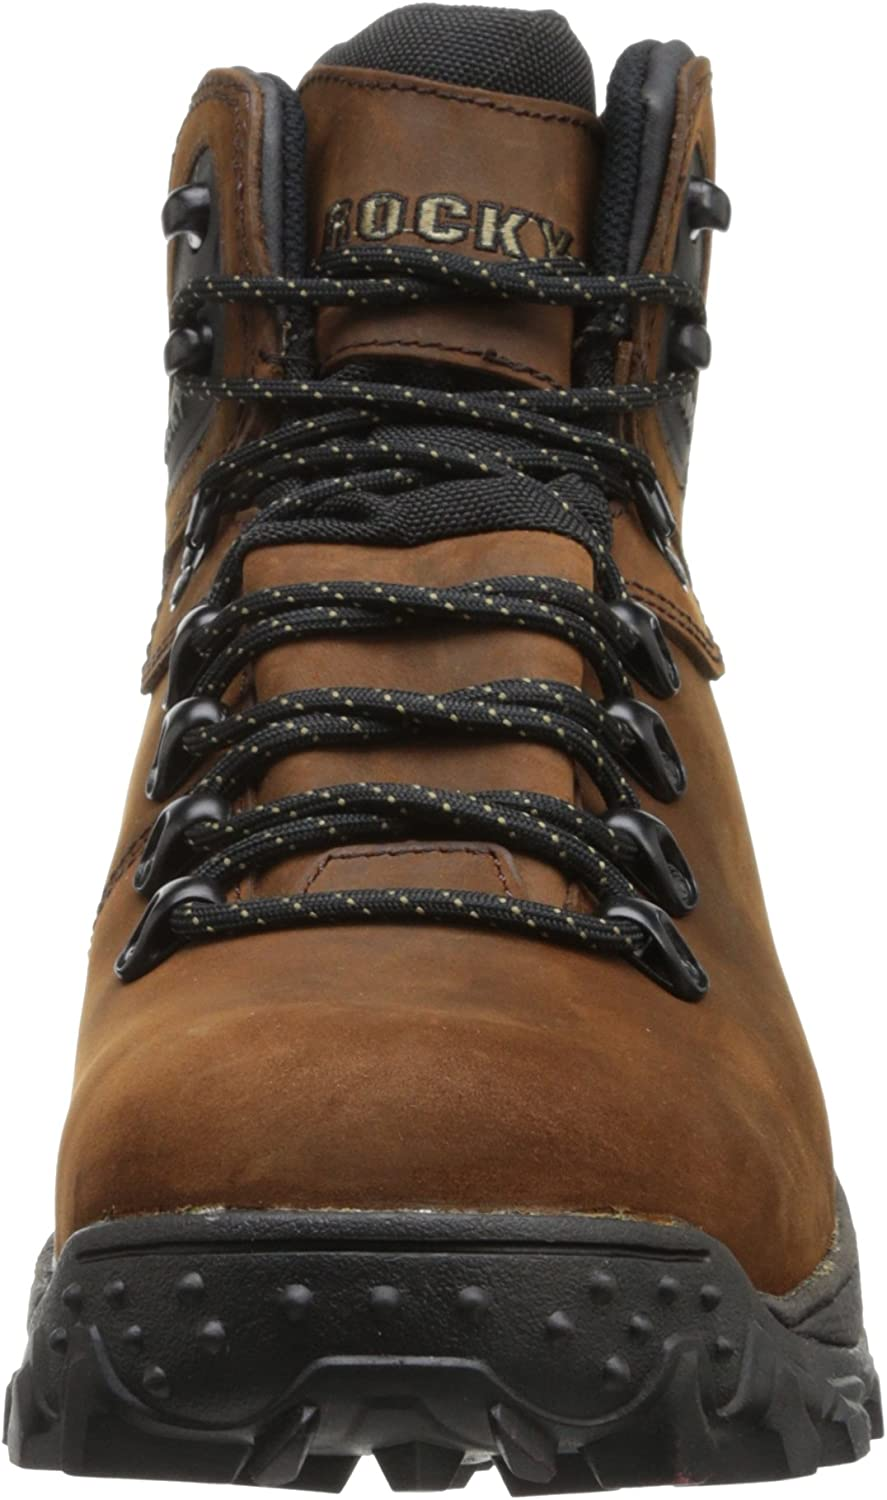 Rocky Men s Fq0005212 Hiking Boot